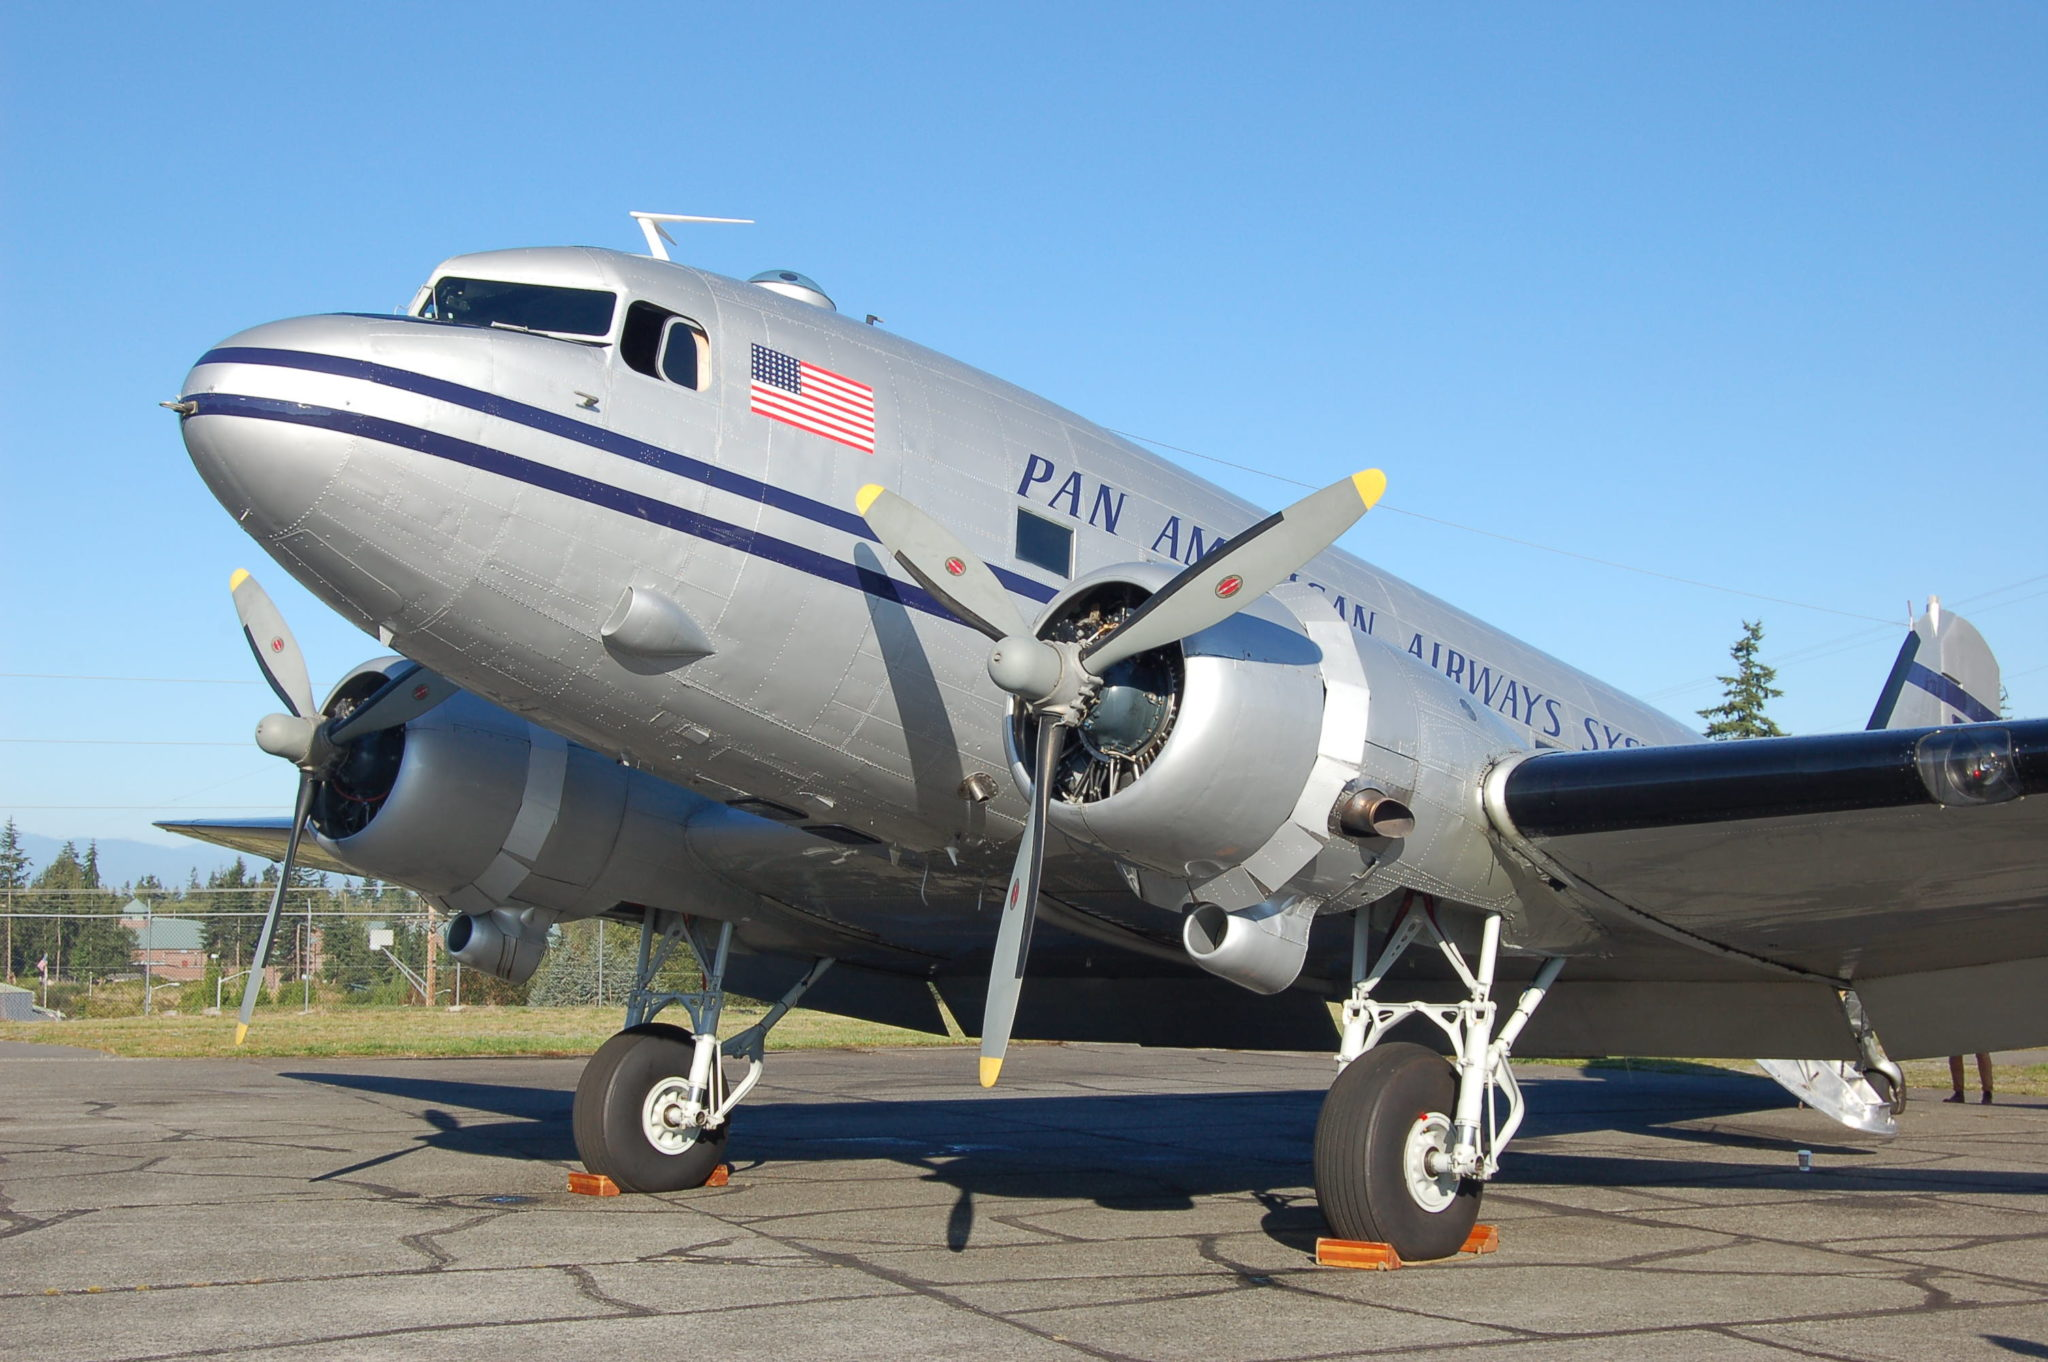 This Douglas DC-3 began life as a C-47 in 1944. It was delivered by Peter Goutier to China National Aviation Corp. in August 1944 in India. Thereafter it flew the Hump during WW II. The airplane was acquired in 2006 by the Historic Flight Foundation and is airworthy, making rounds to air shows and giving rides. Photo by Scott Hamilton